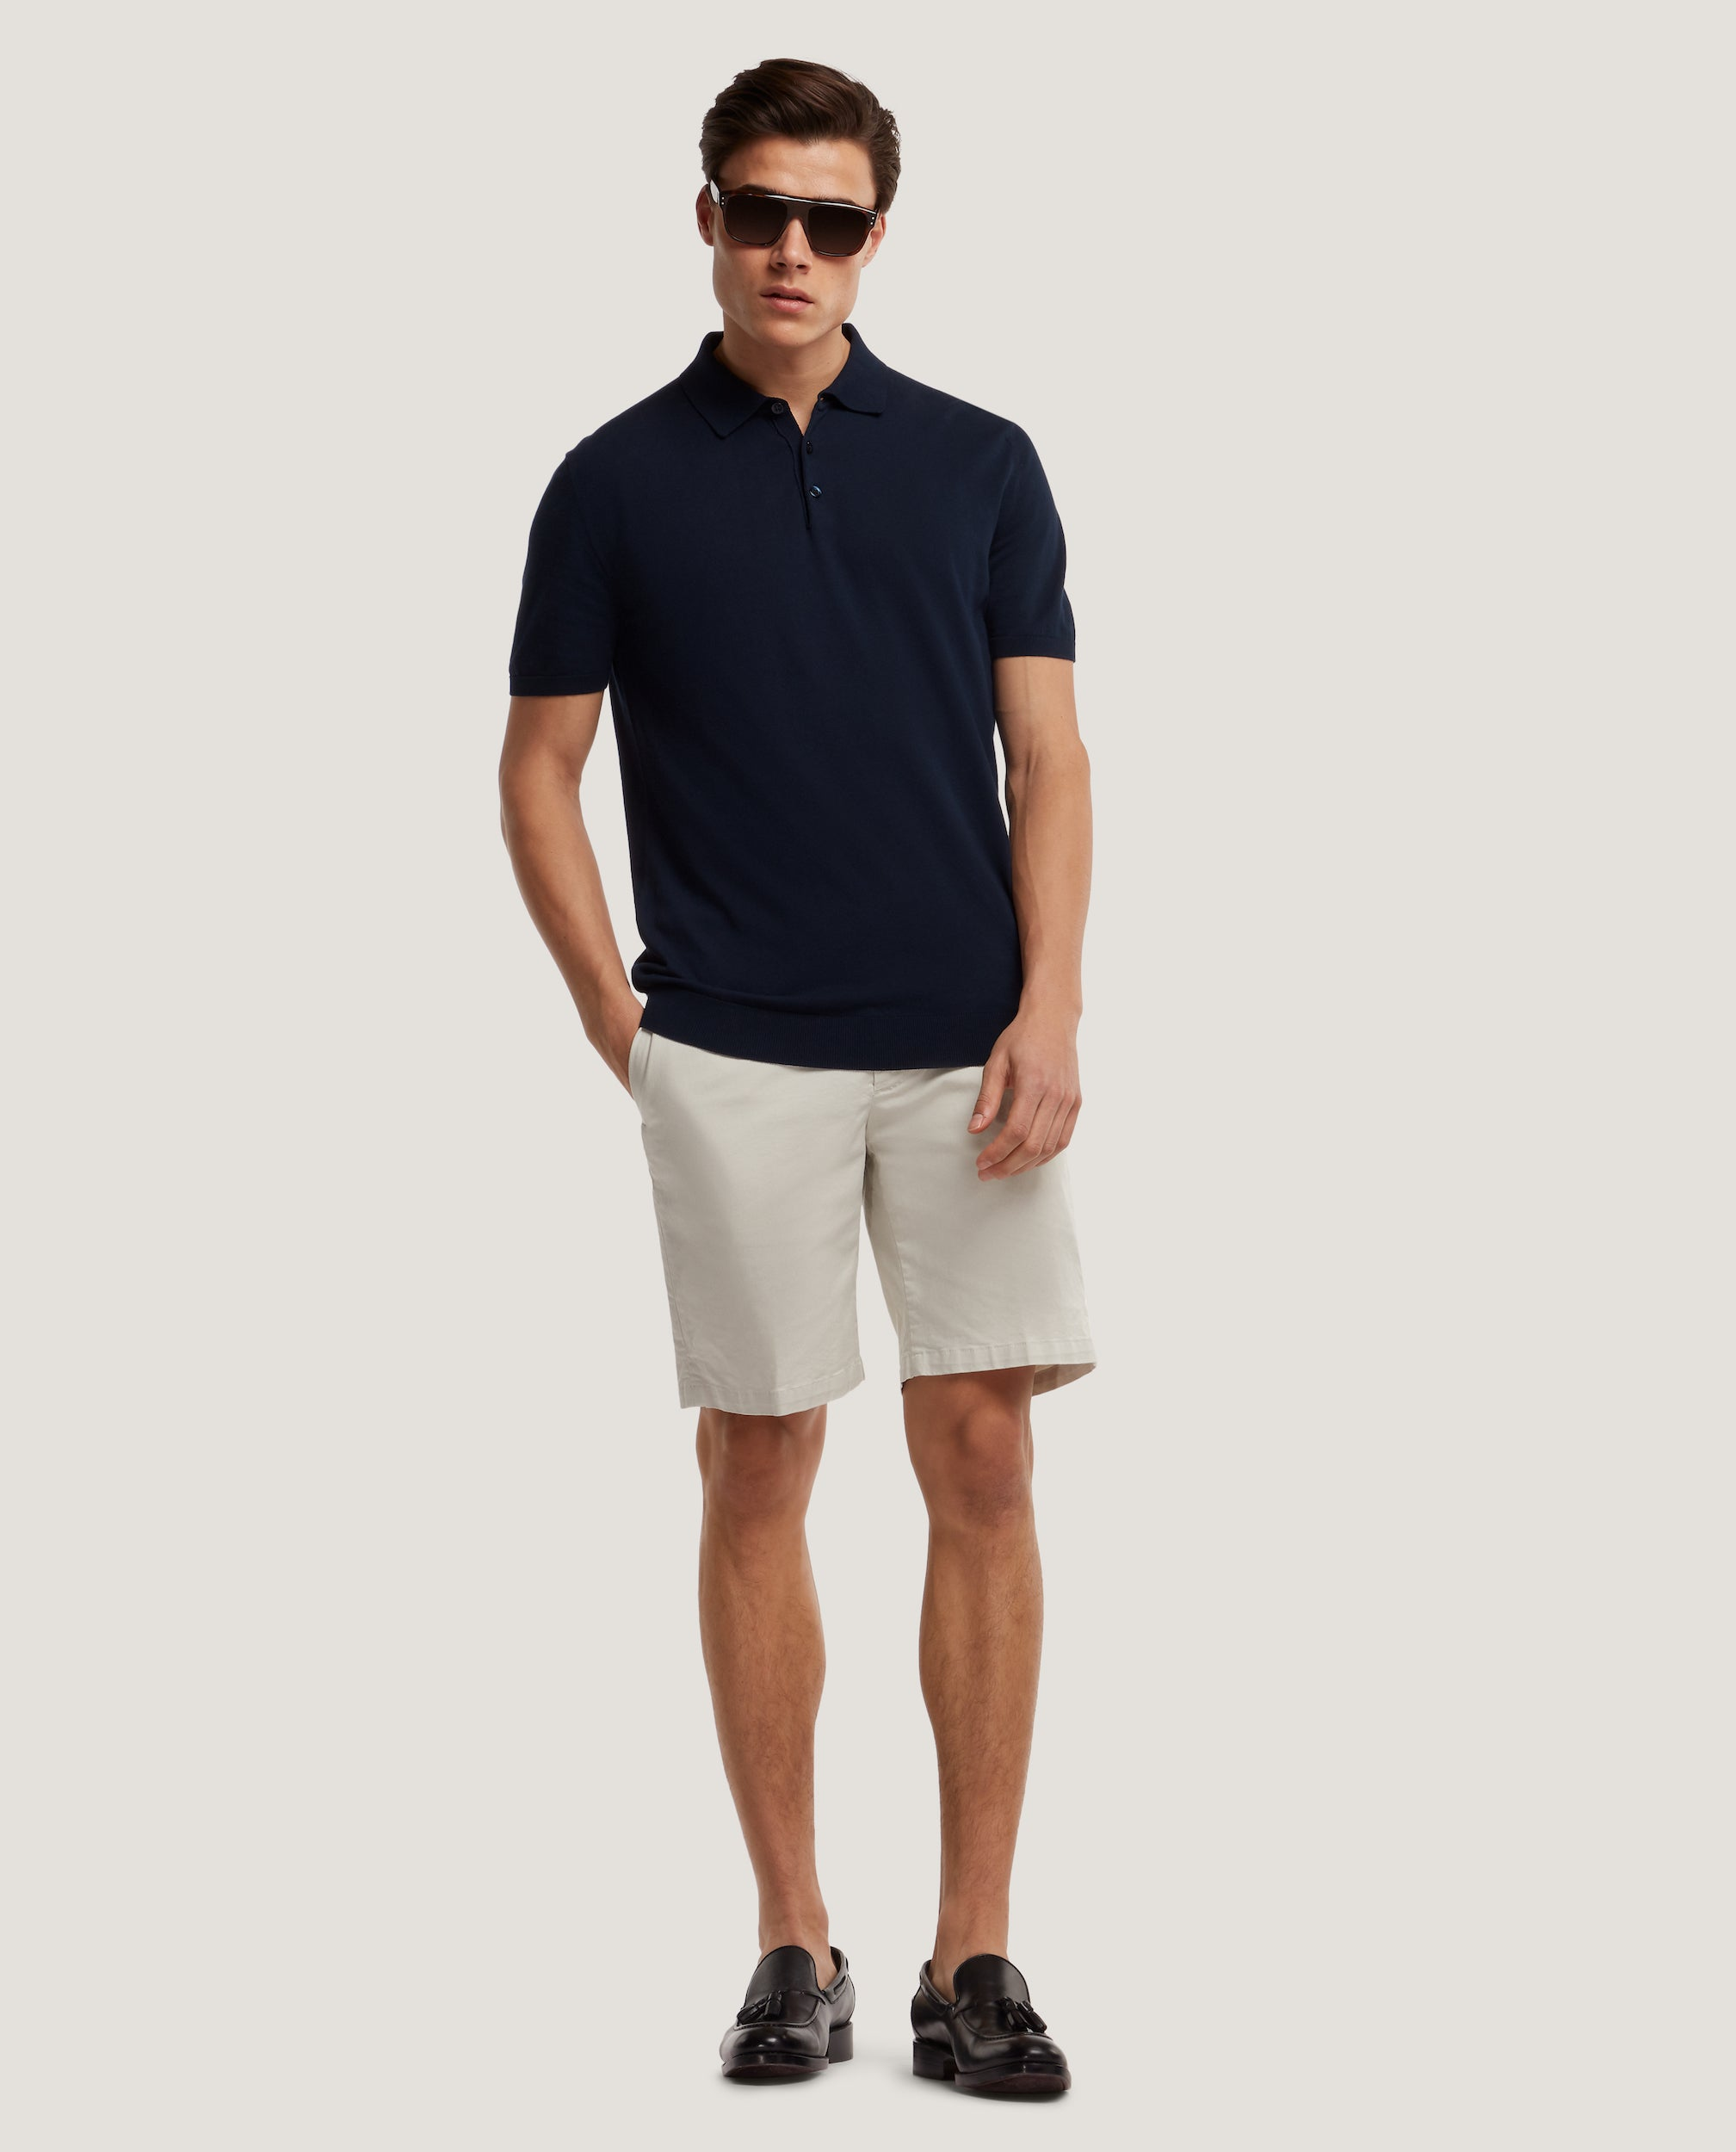 ELIEL COTTON KNIT POLO by Salle Privée